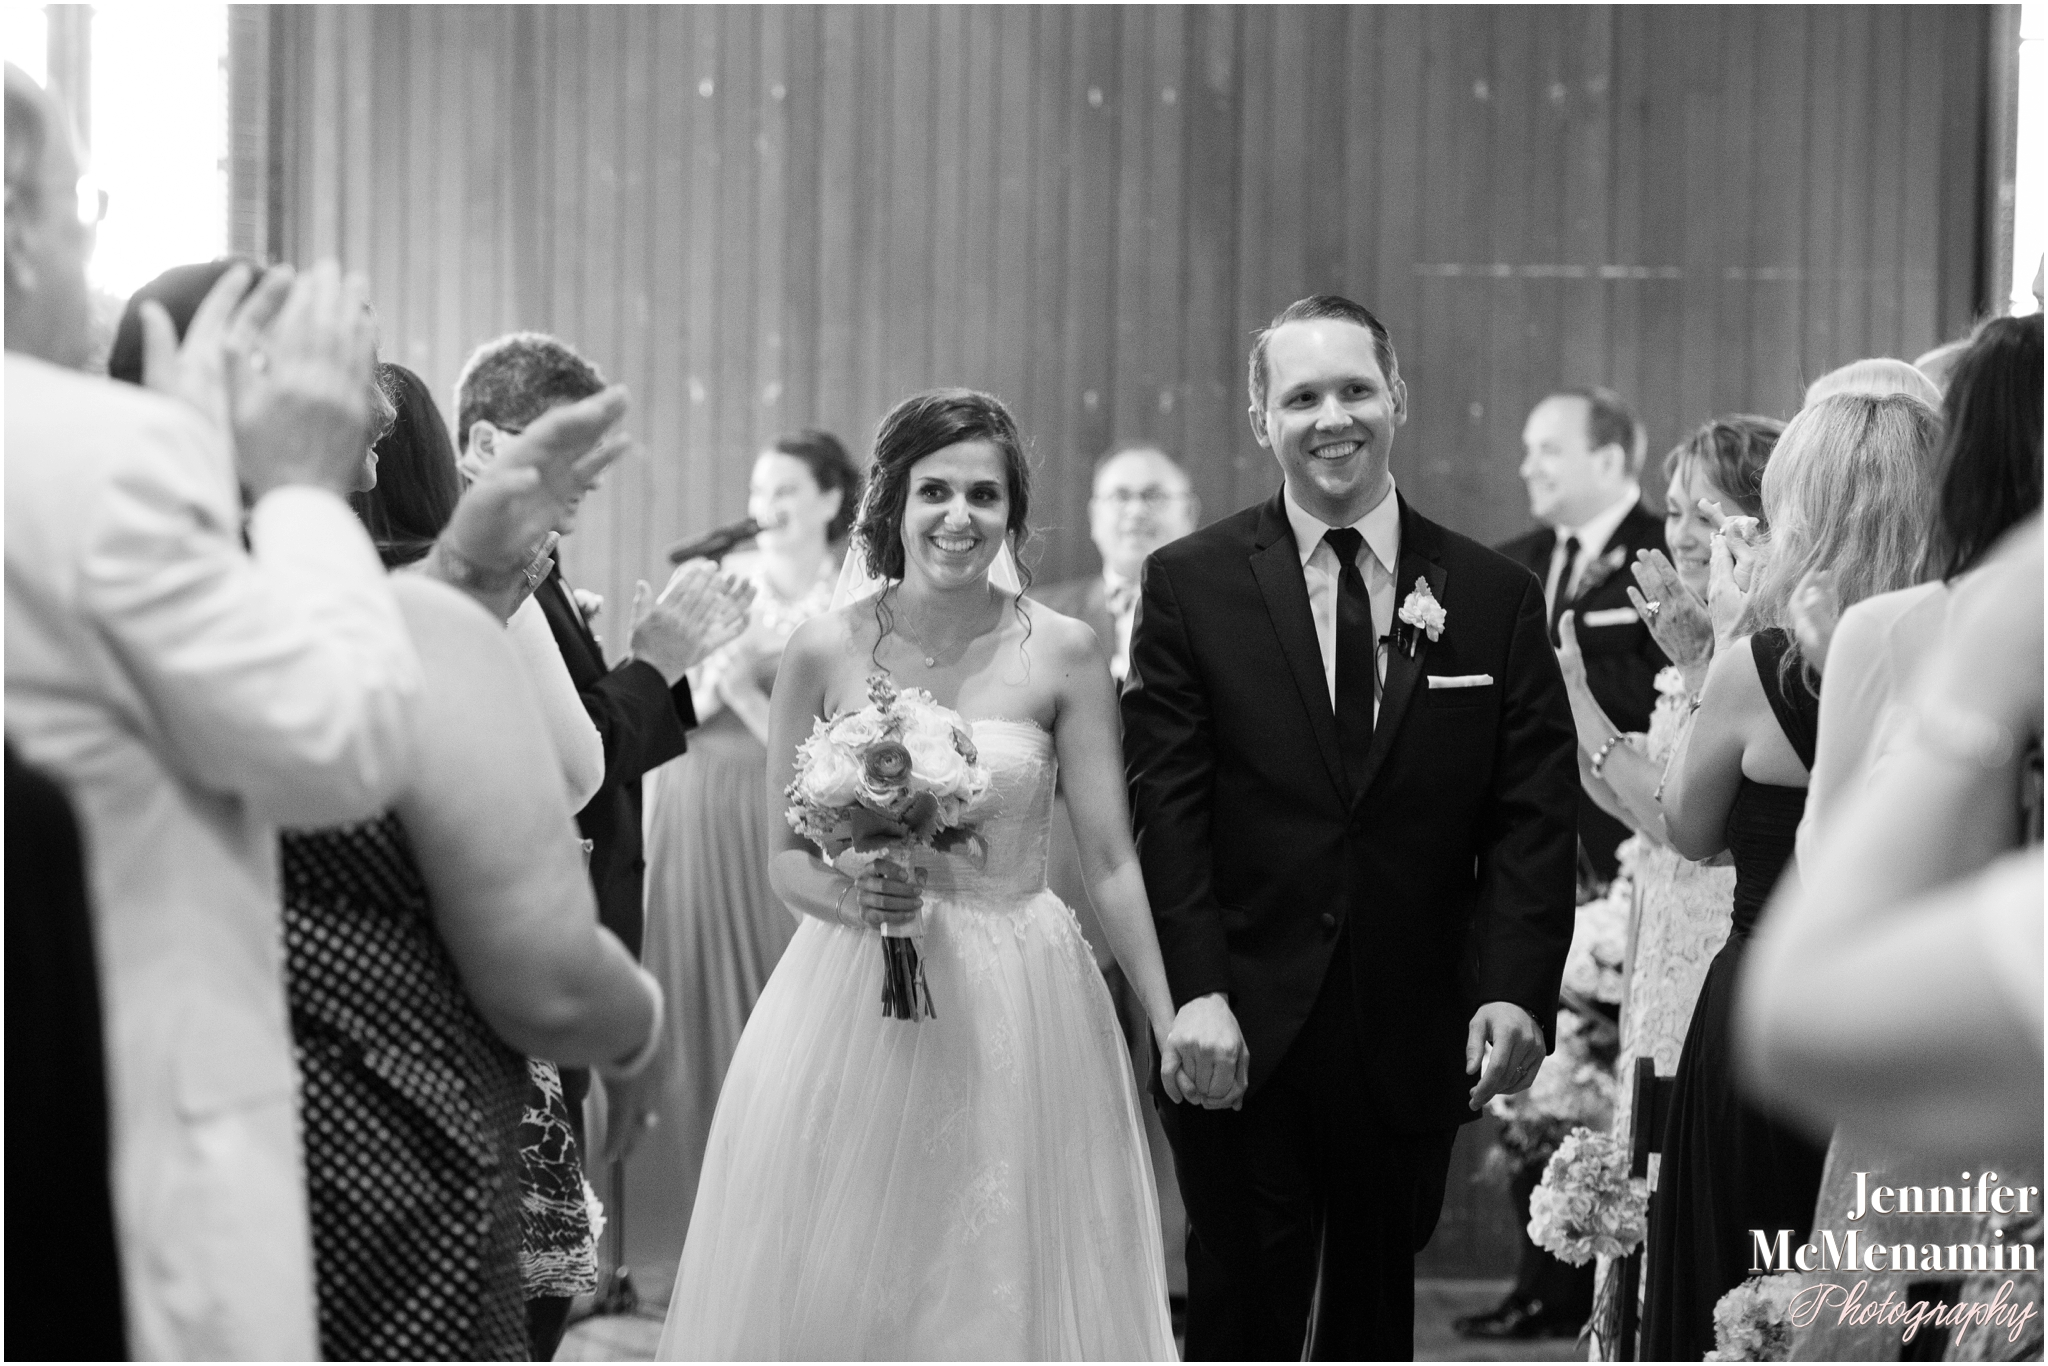 0086-BlumWilliams_03189bw-0619_JenniferMcMenaminPhotography_Evergreen-Museum-Carriage-House_Baltimore-wedding-photography_Baltimore-wedding-photographer